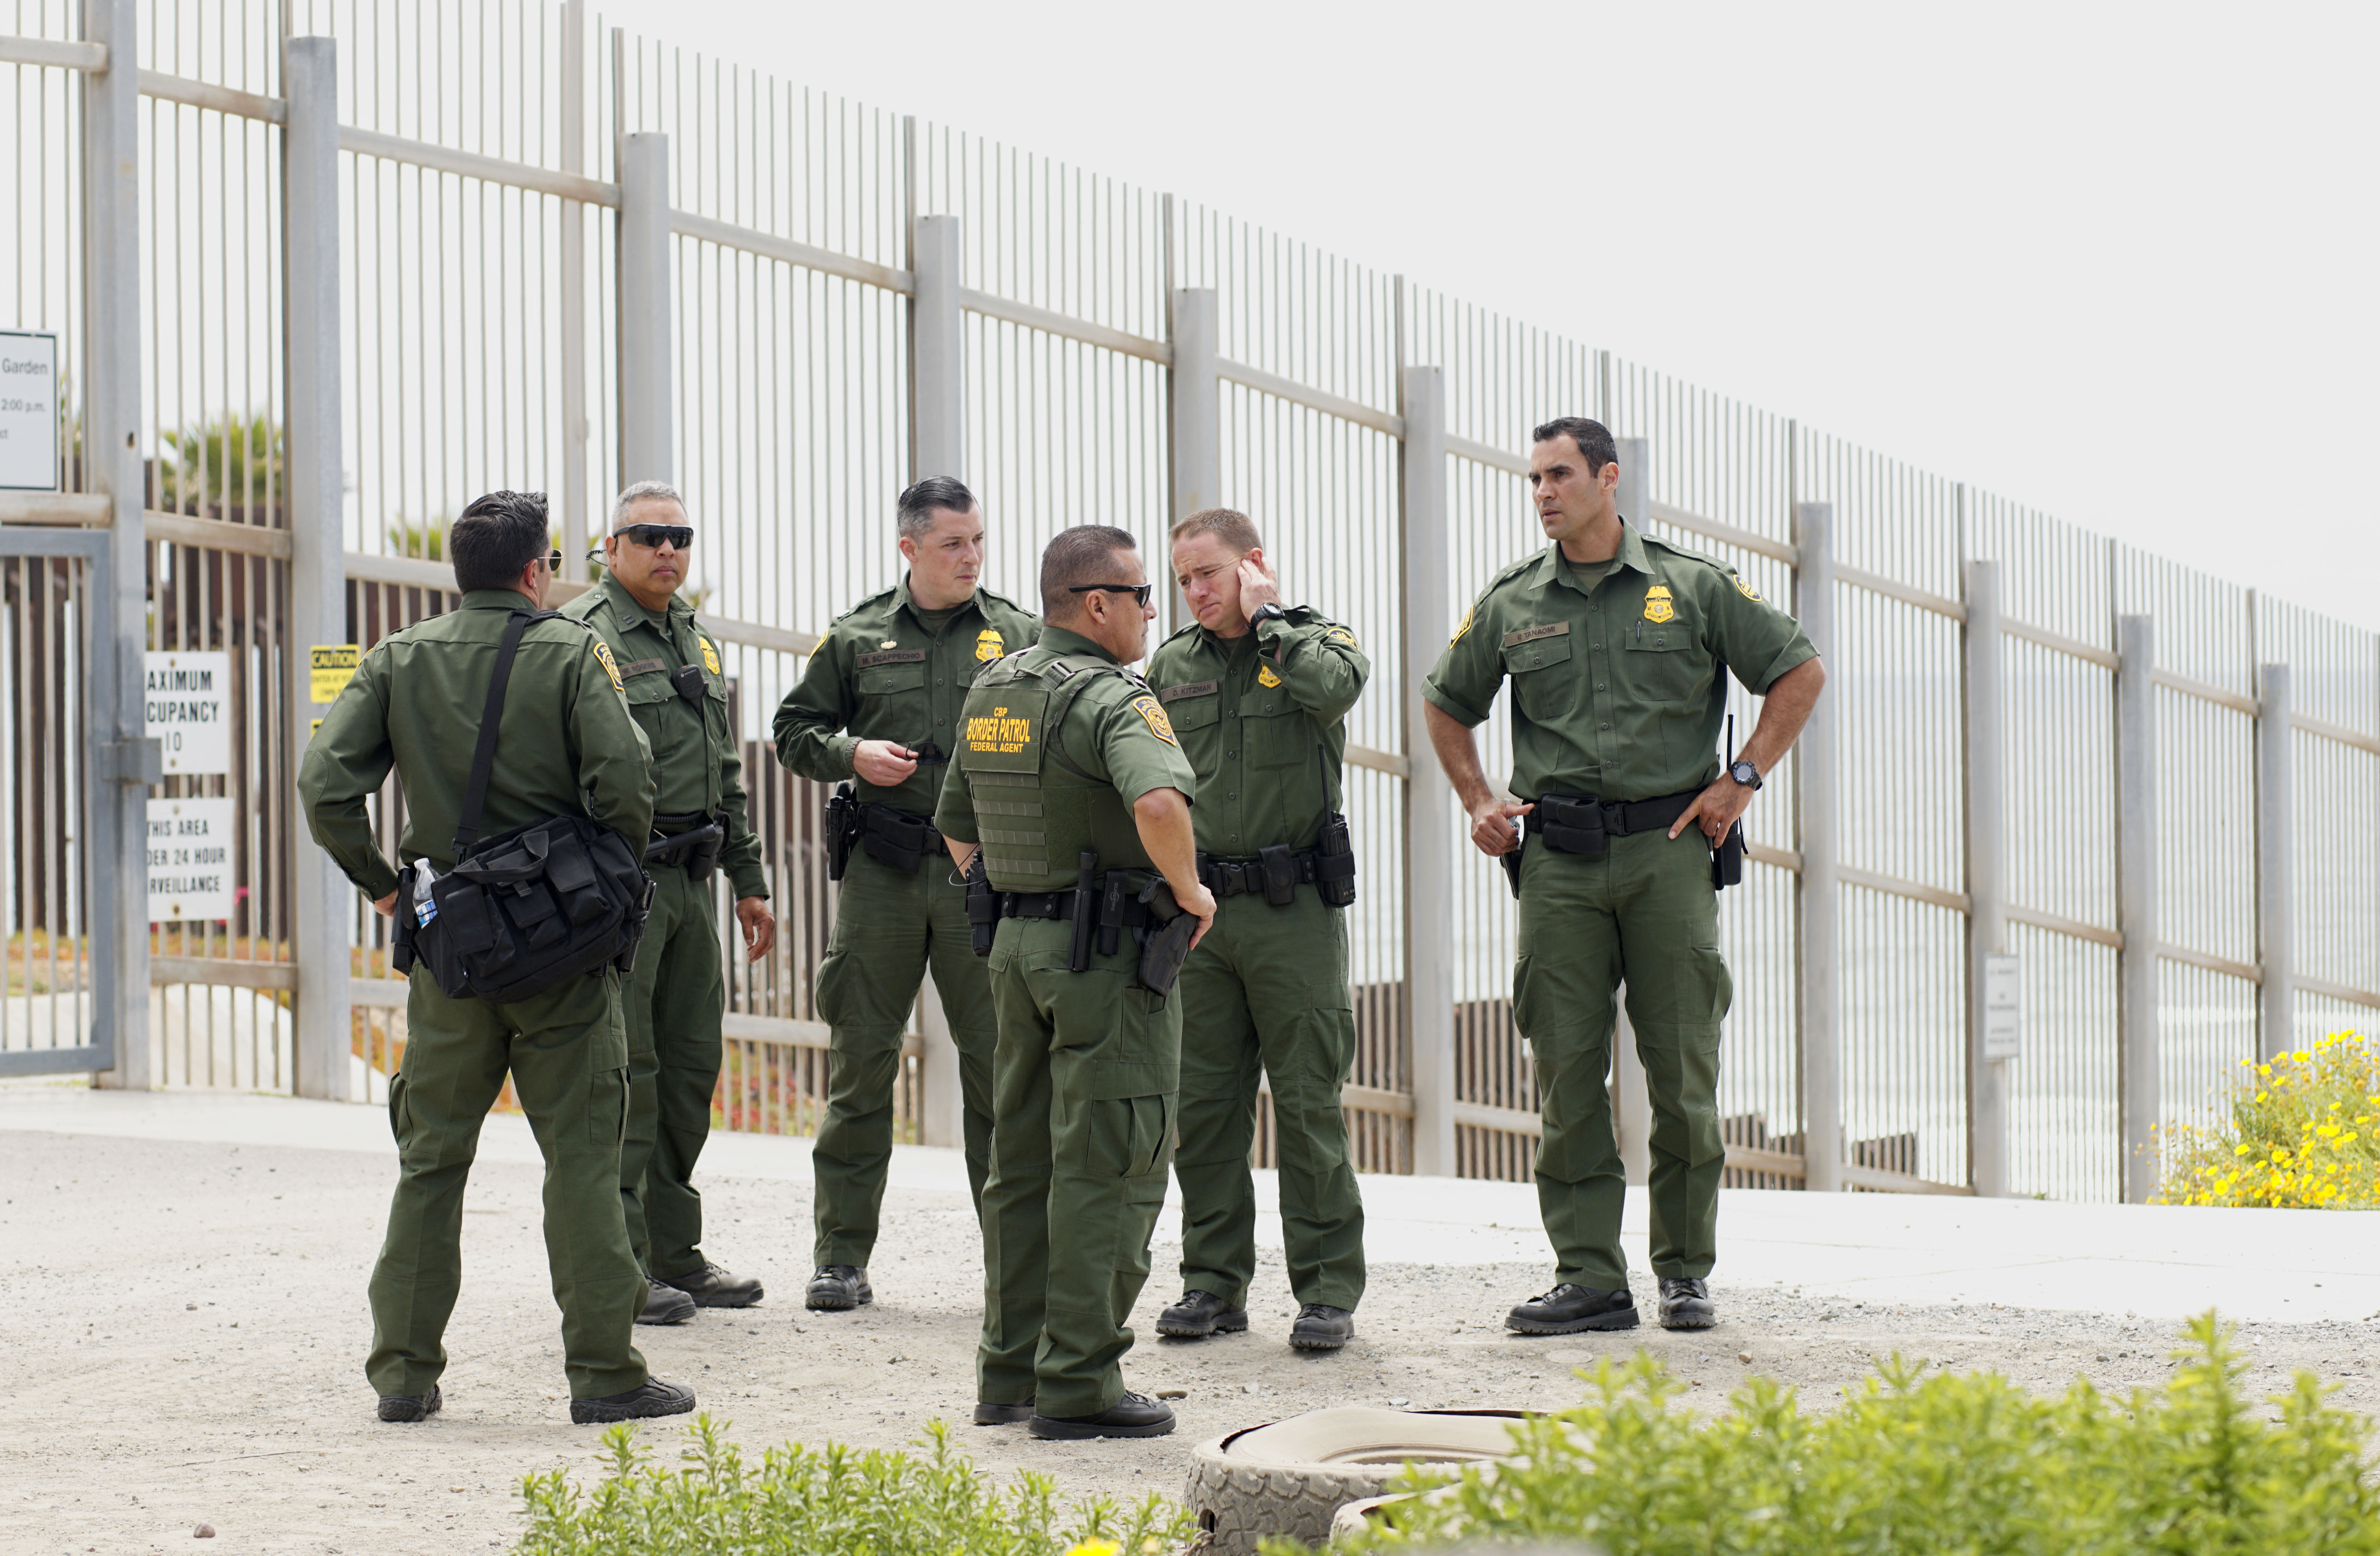 SAN YSIDRO, CA - MAY 7: Border Patrol agents patrol the area near where Attorney General Jeff Sessions addresses the media during a press conference at Border Field State Park on May 7, 2018 in San Ysidro, CA. Sessions was on a visit to the border along with ICE Deputy Director Thomas D. Homan to discuss the immigration enforcement actions of the Trump Administration. (Photo by Sandy Huffaker/Getty Images)